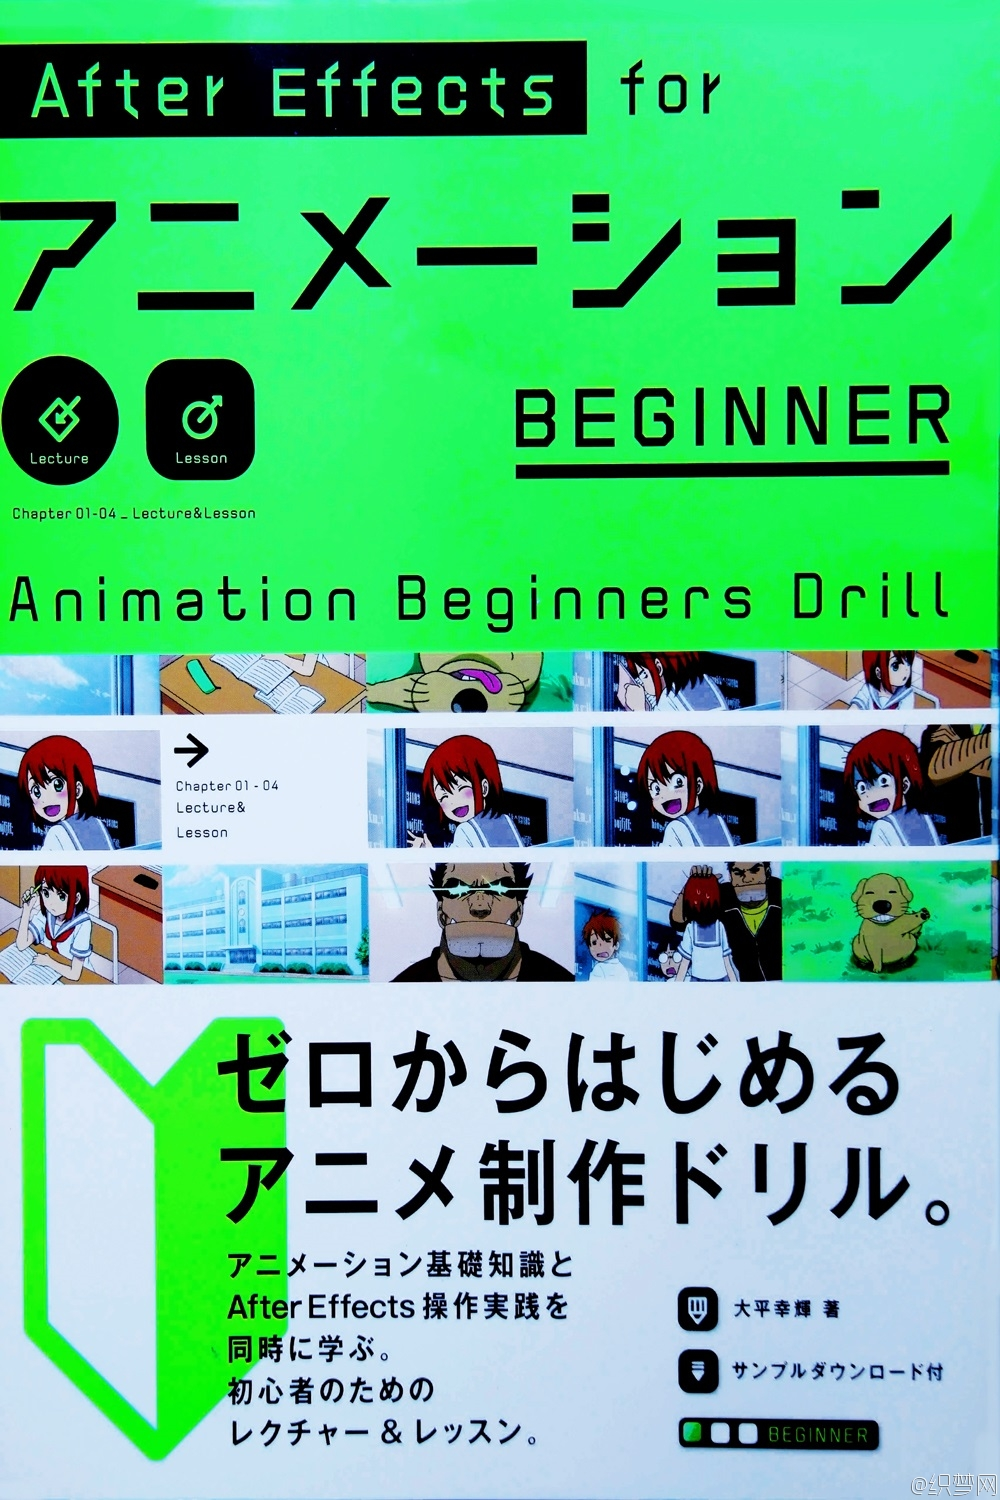 After Effects动画初学者 - Animation Beginners Drill